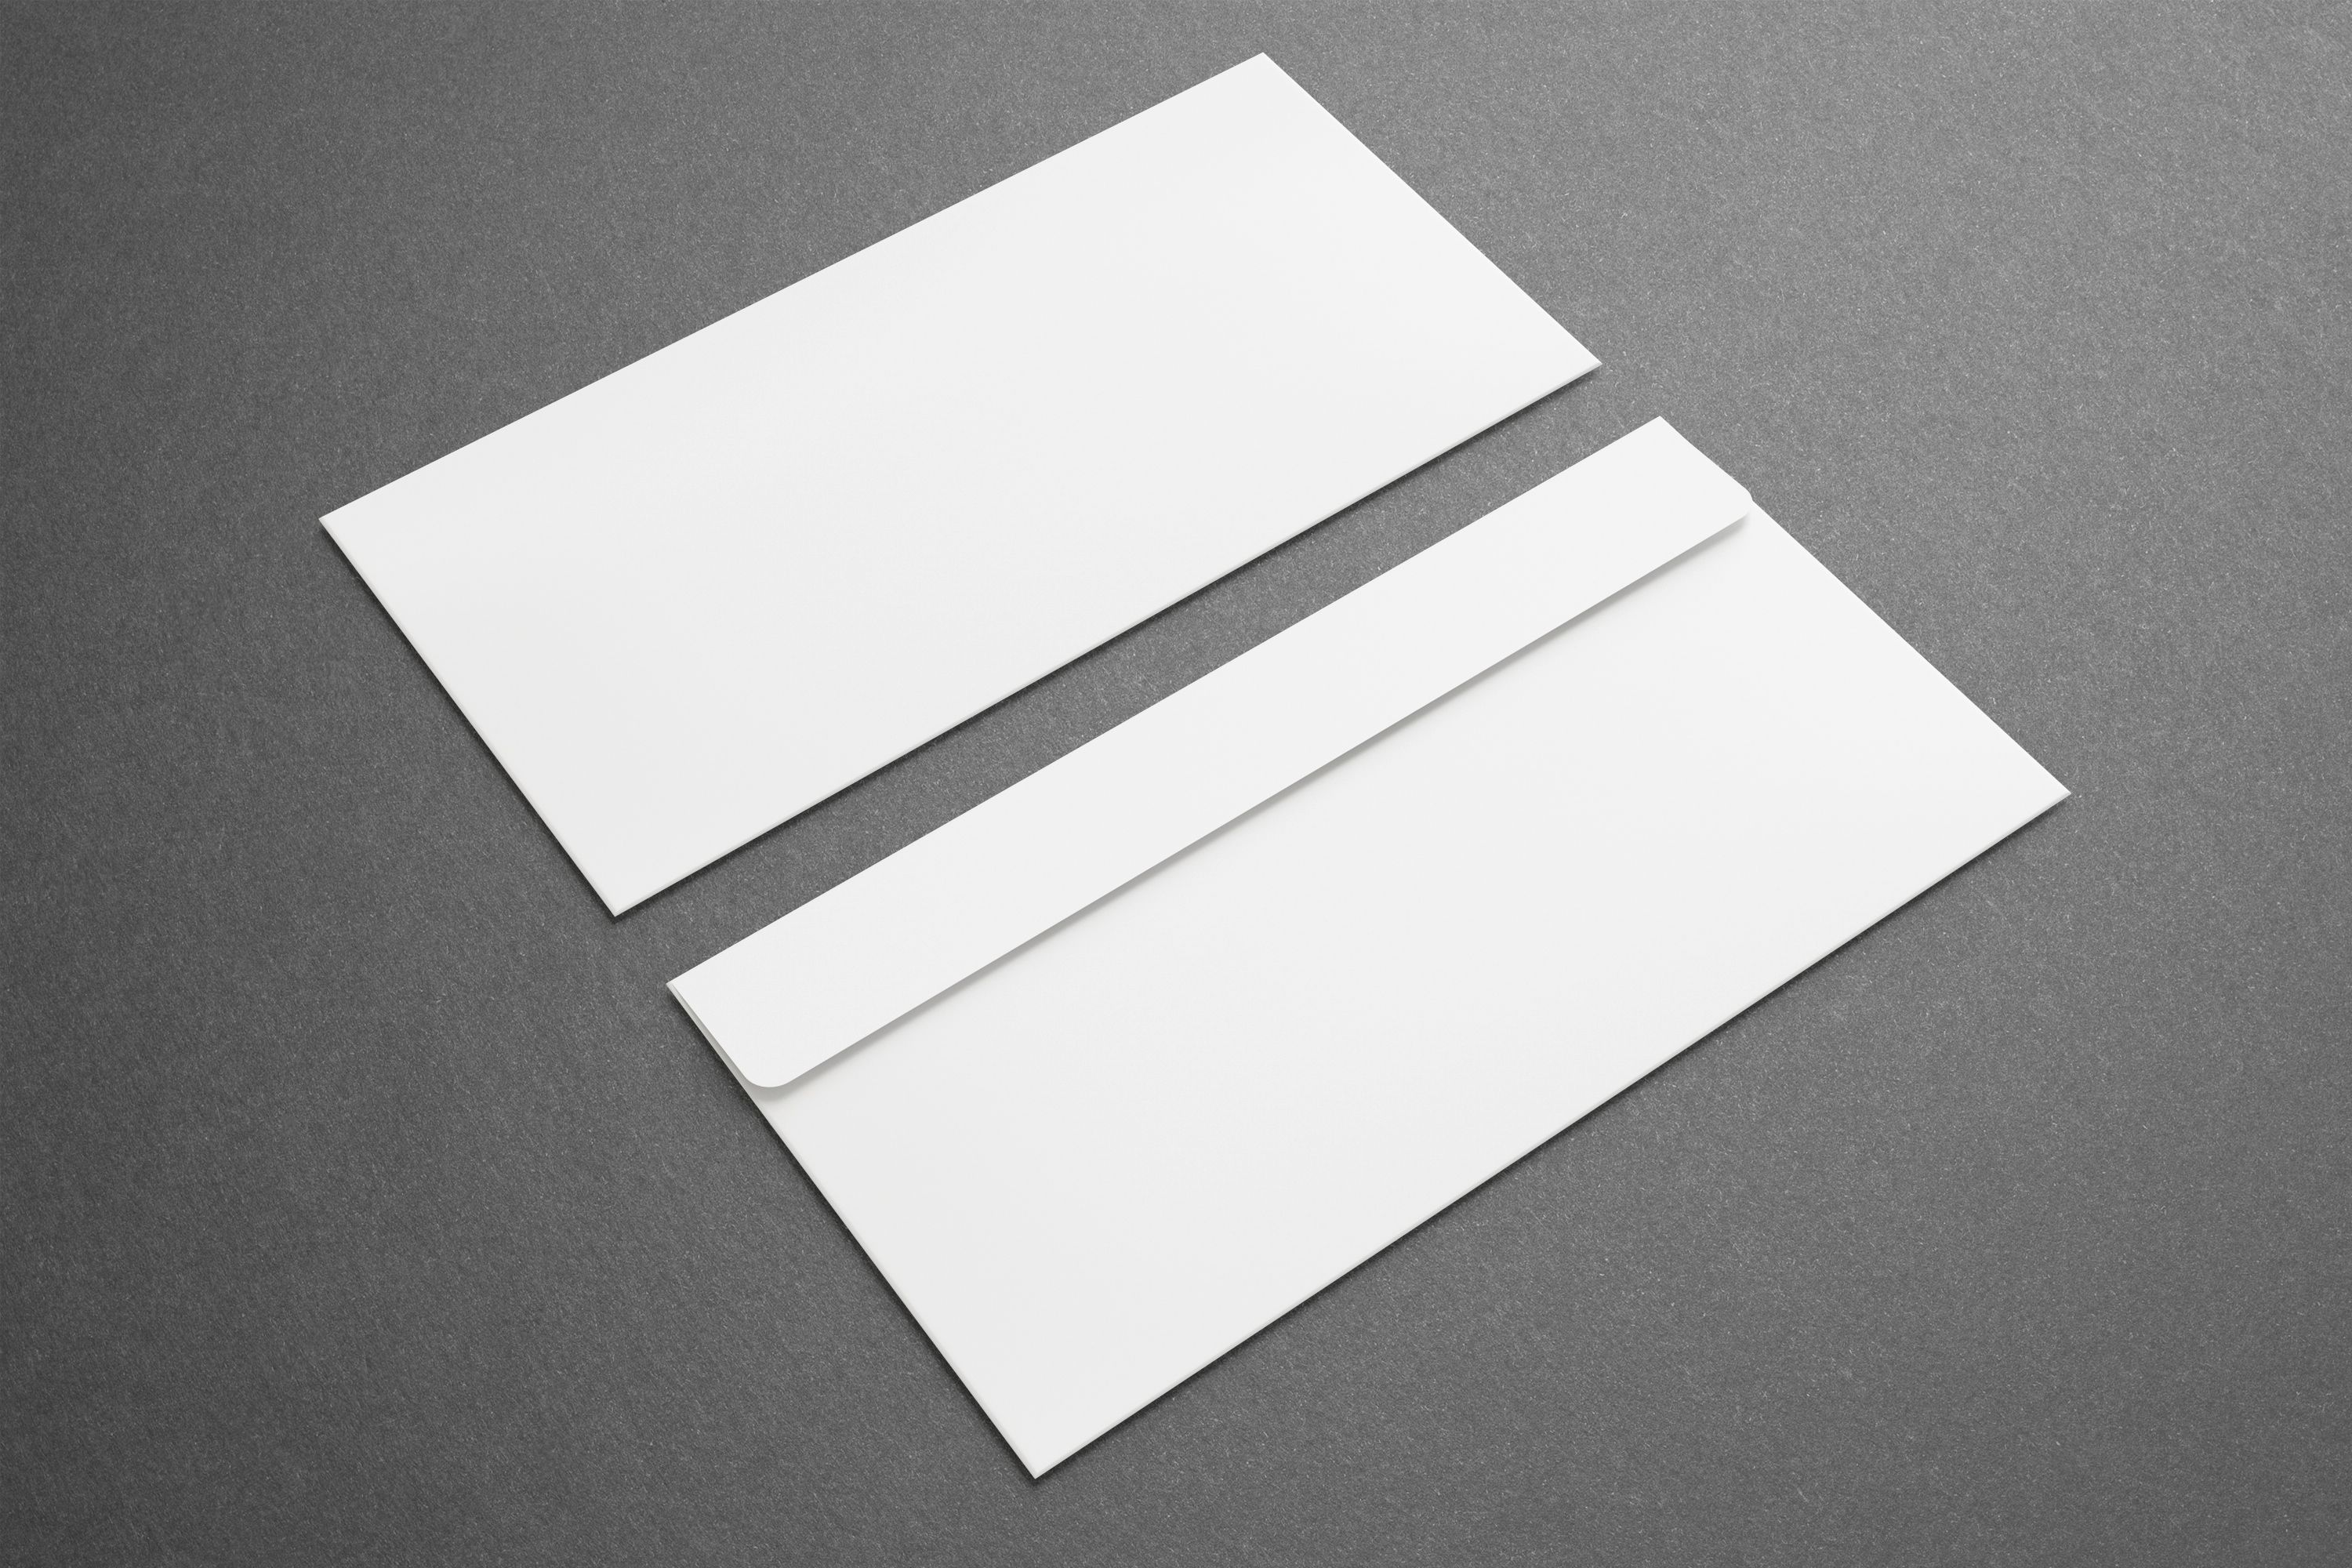 How To Make An Envelope Out Of 8 5 By 11 Inch Paper Ehow Com In 2020 How To Make An Envelope Envelope Tutorial Envelope Template Printable